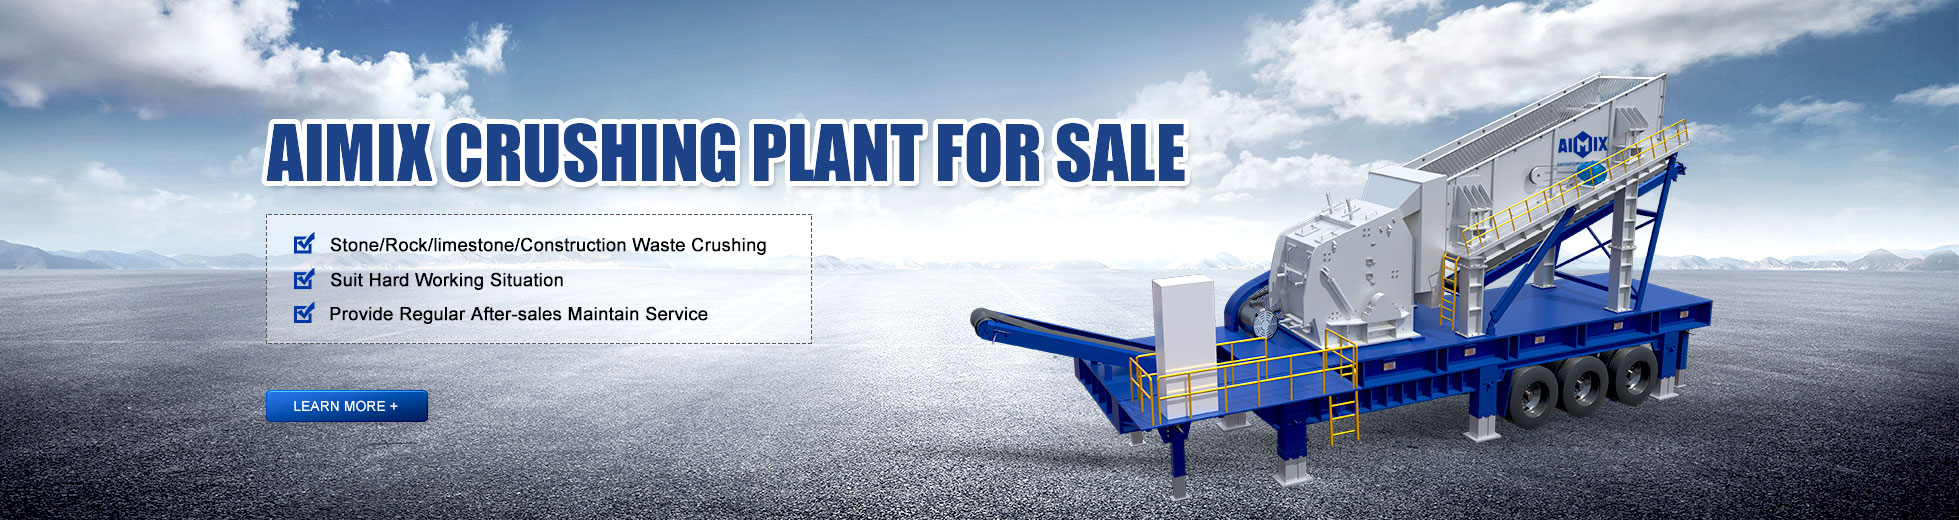 Aimix Crusher Plant For Sale